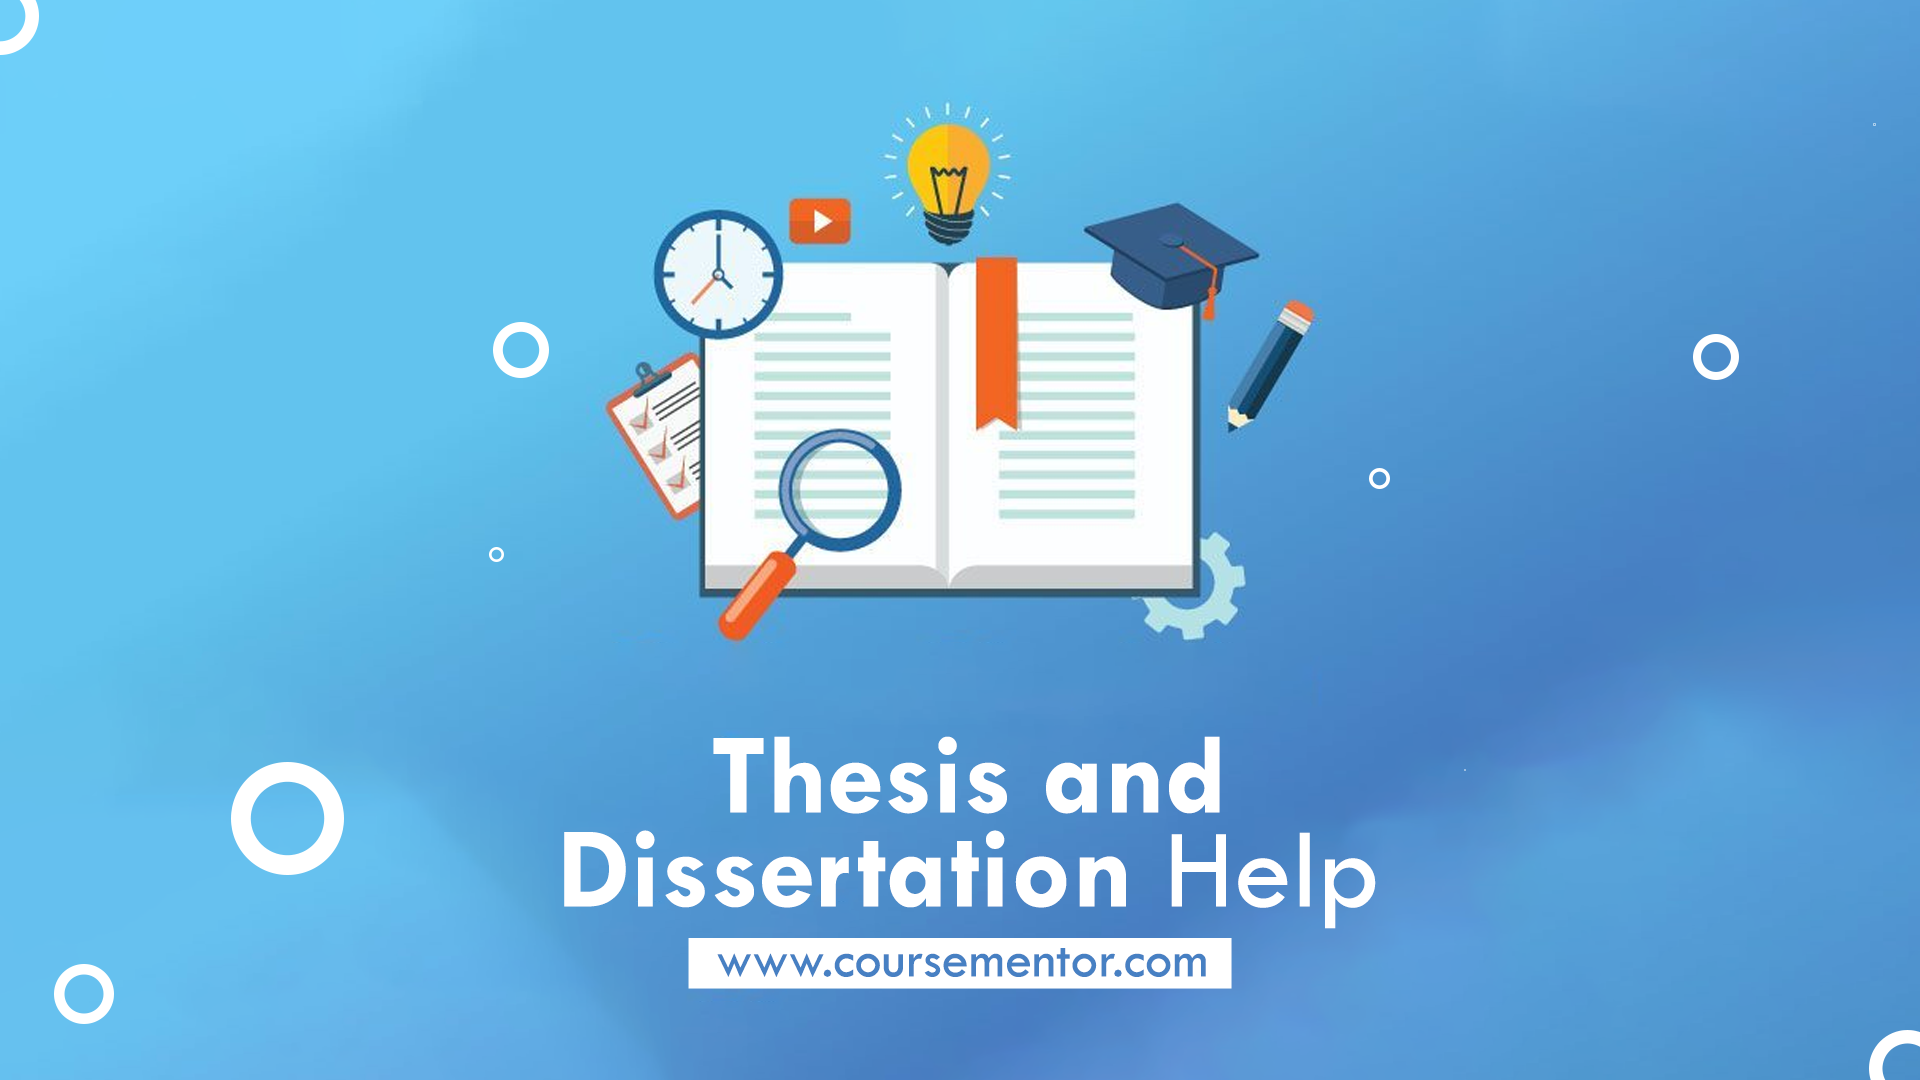 A Good essay for grad school admission Is...